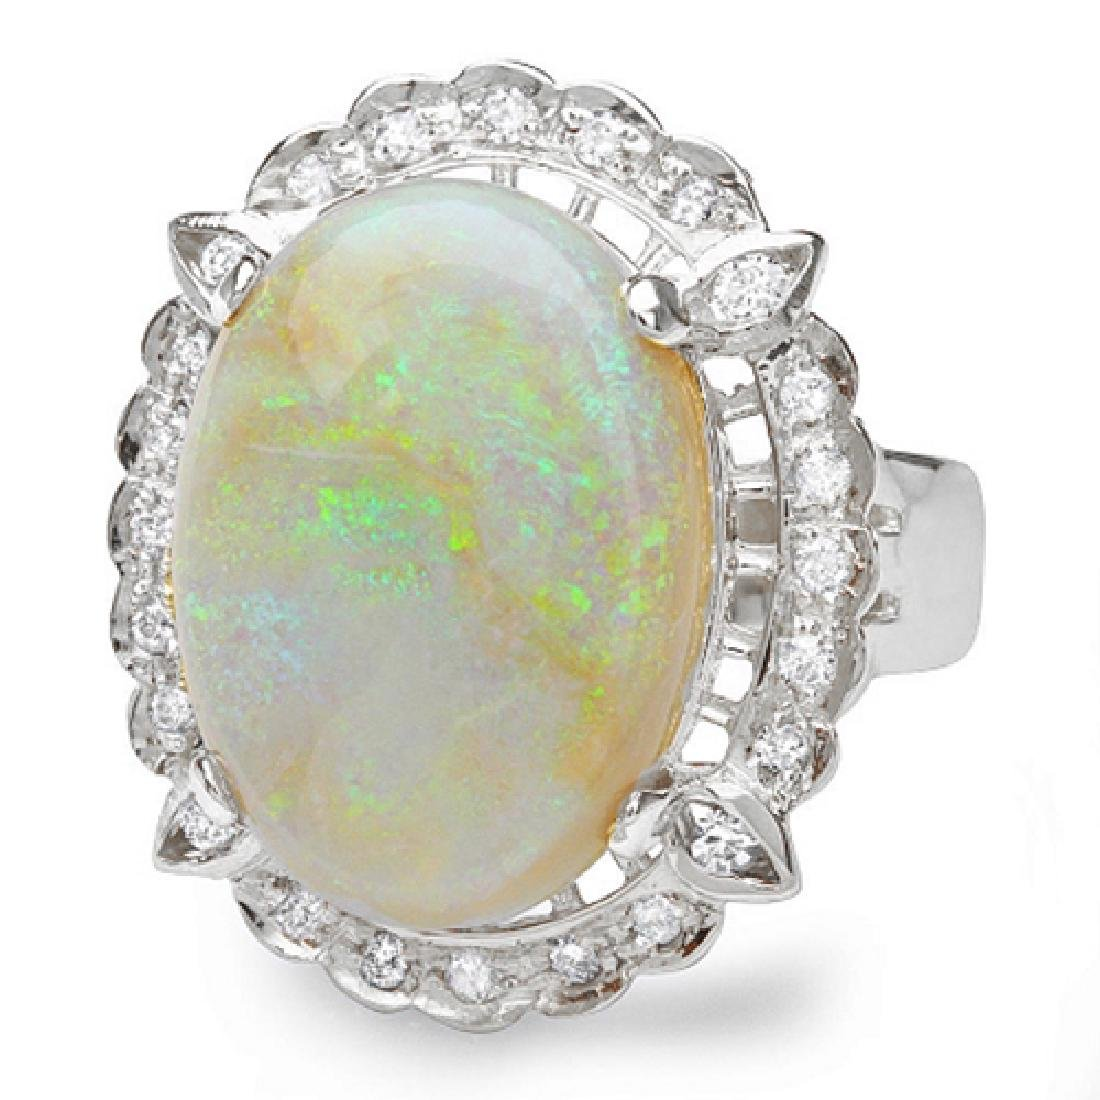 12.38 Carat Natural Opal 18K Solid White Gold Diamond - 2